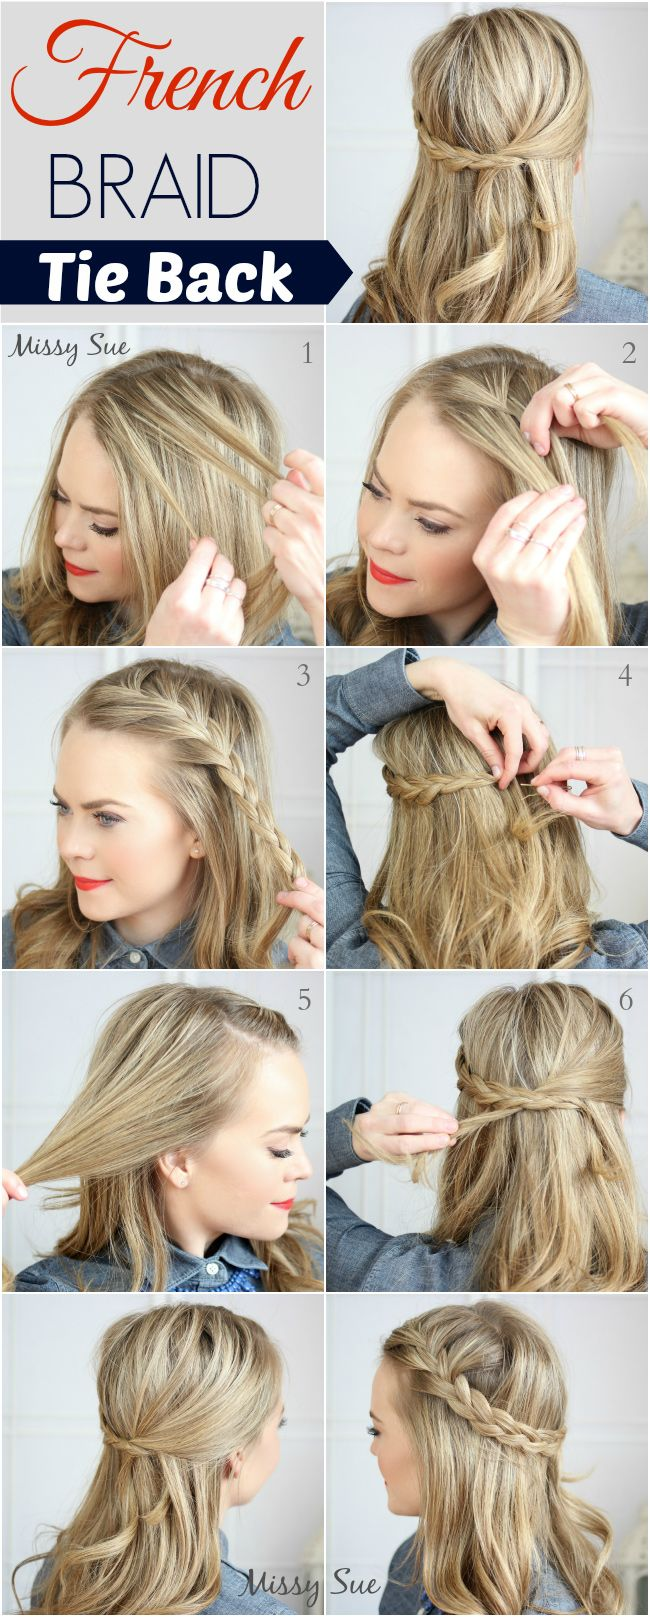 Peachy 13 Diy Wedding Hairstyles To Try On Your Own Modwedding Short Hairstyles Gunalazisus